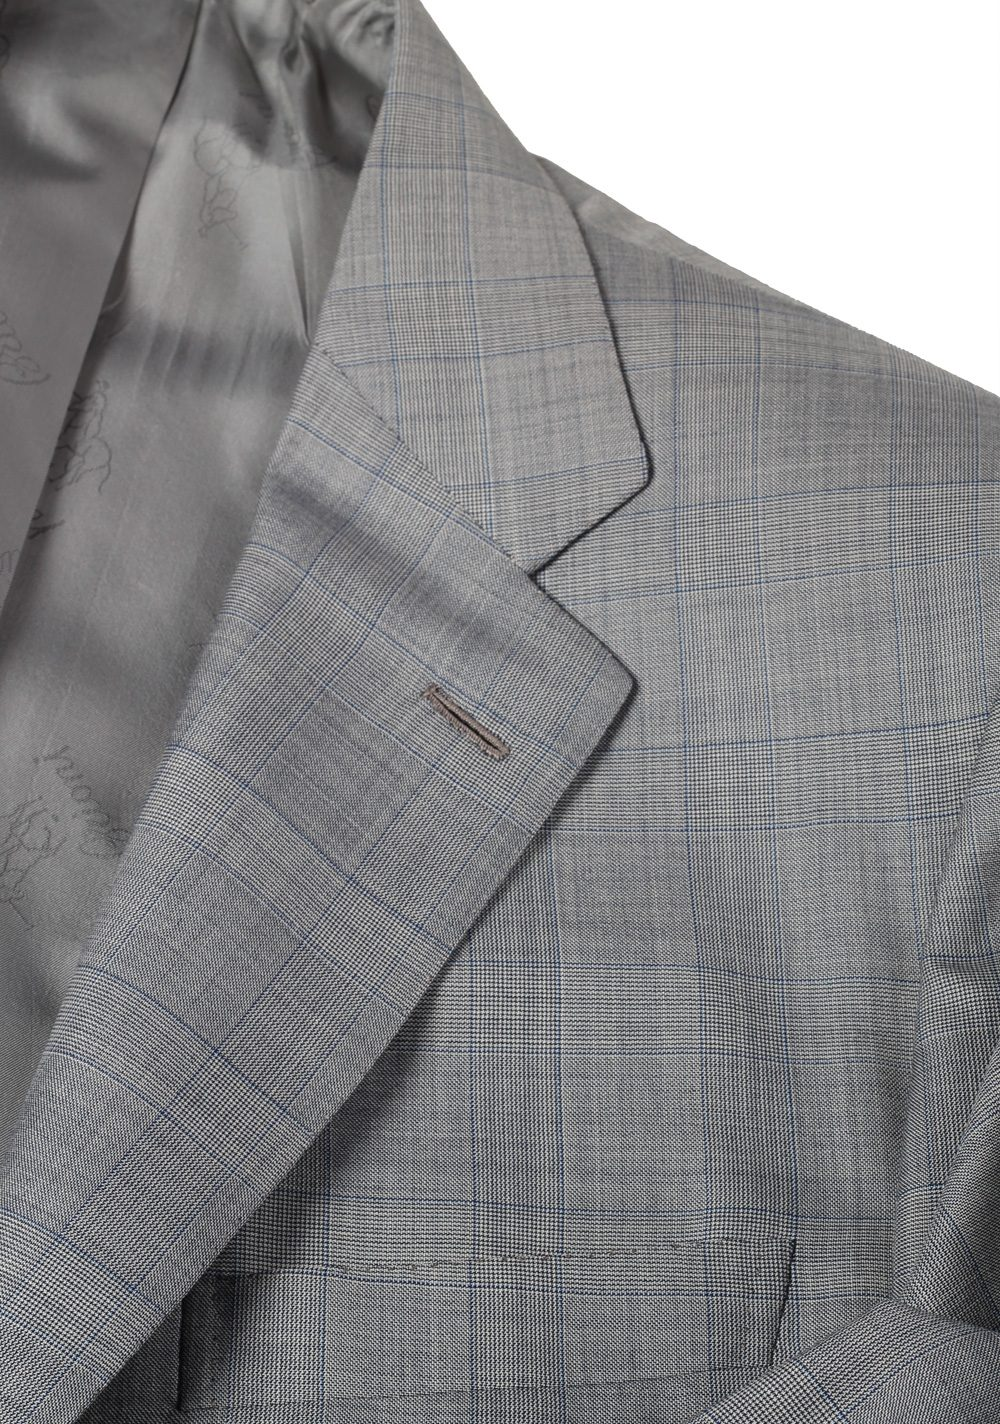 Brioni Parlamento Gray Checked Suit Size 50 / 40R U.S. Wool Silk | Costume Limité